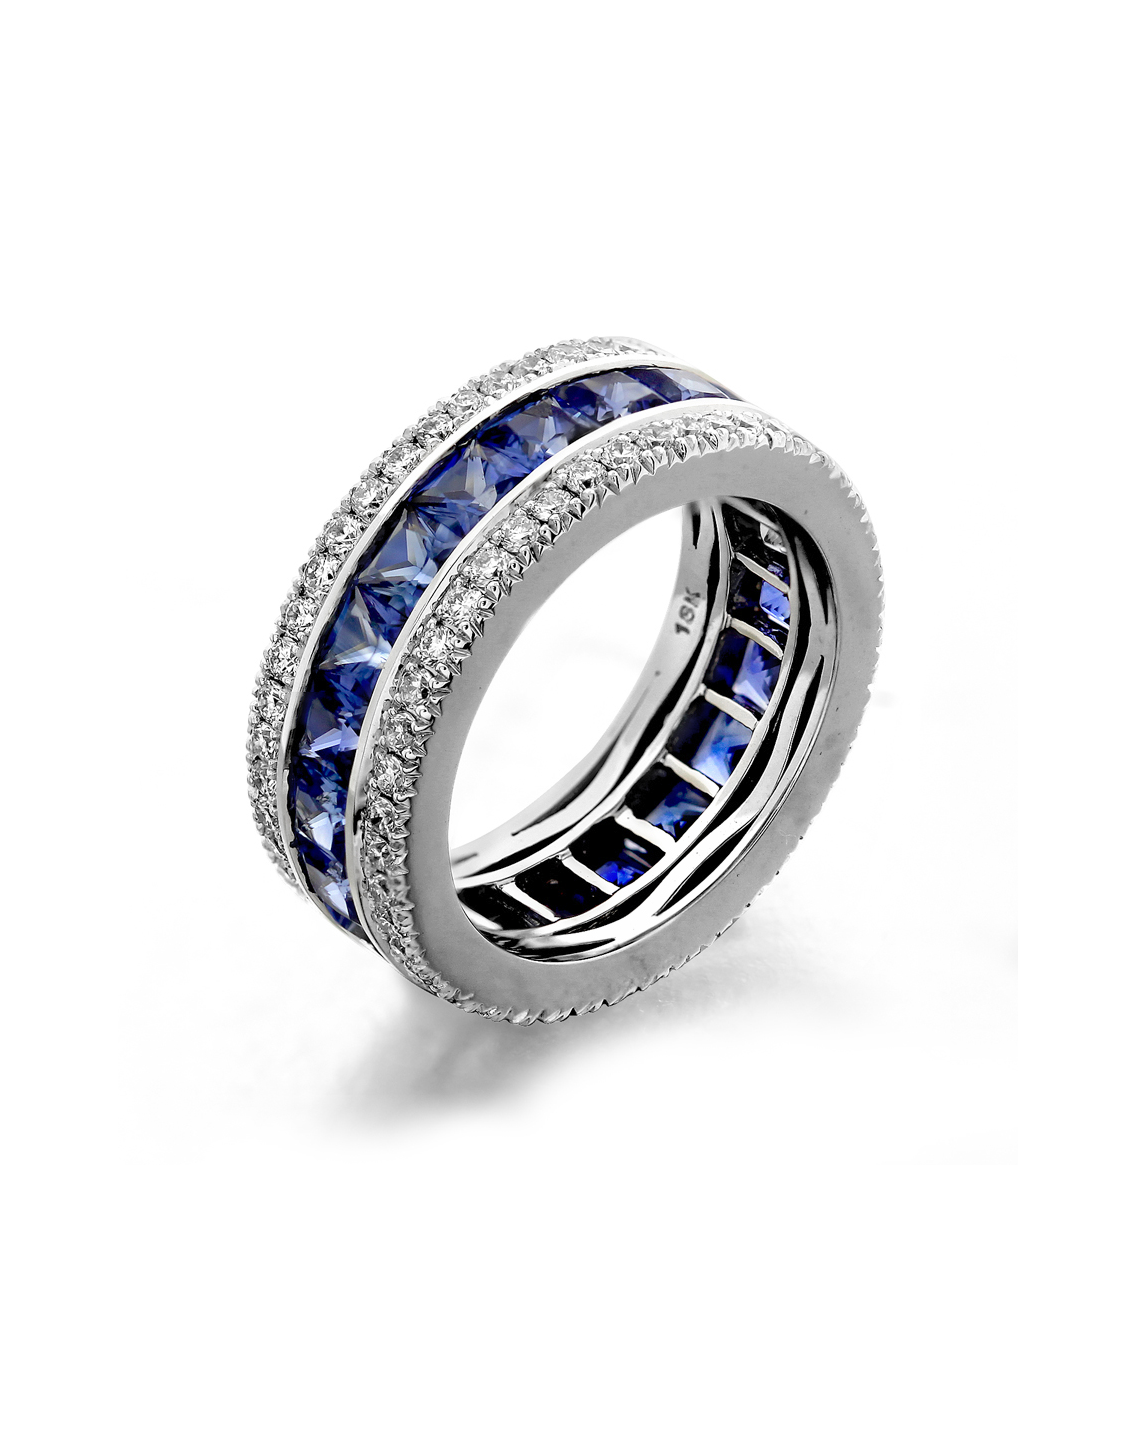 This is a picture of Diamond and Sapphire Eternity Wedding Band